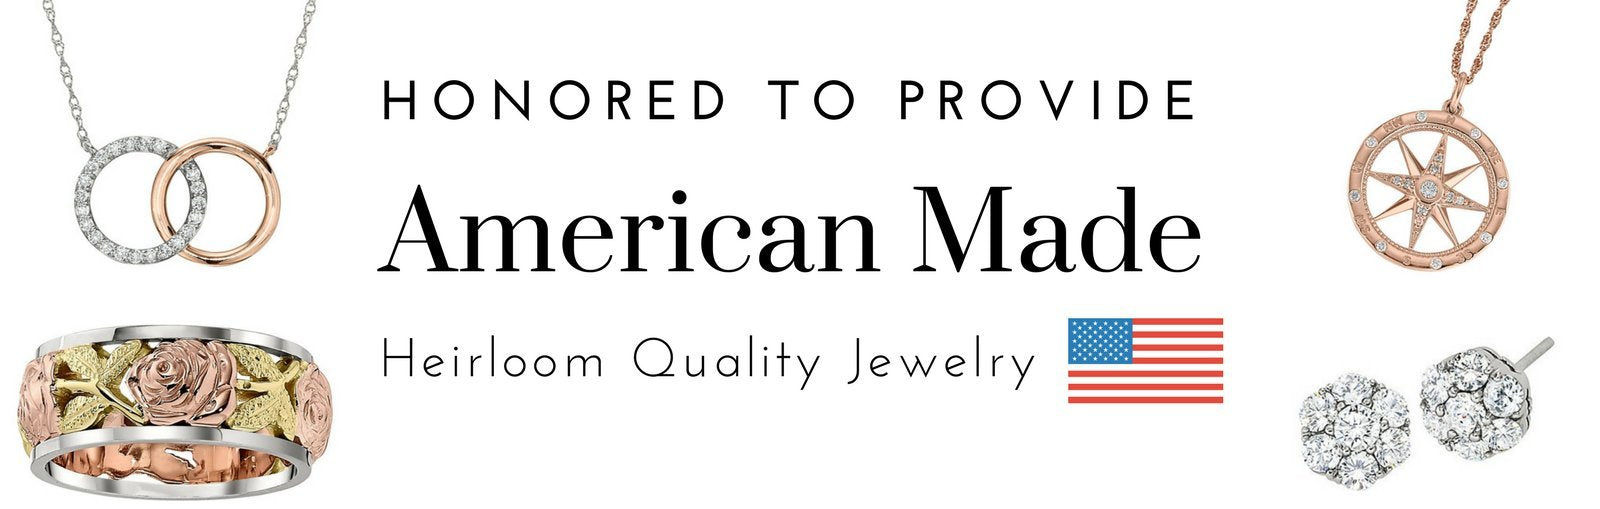 American Made Jewelry